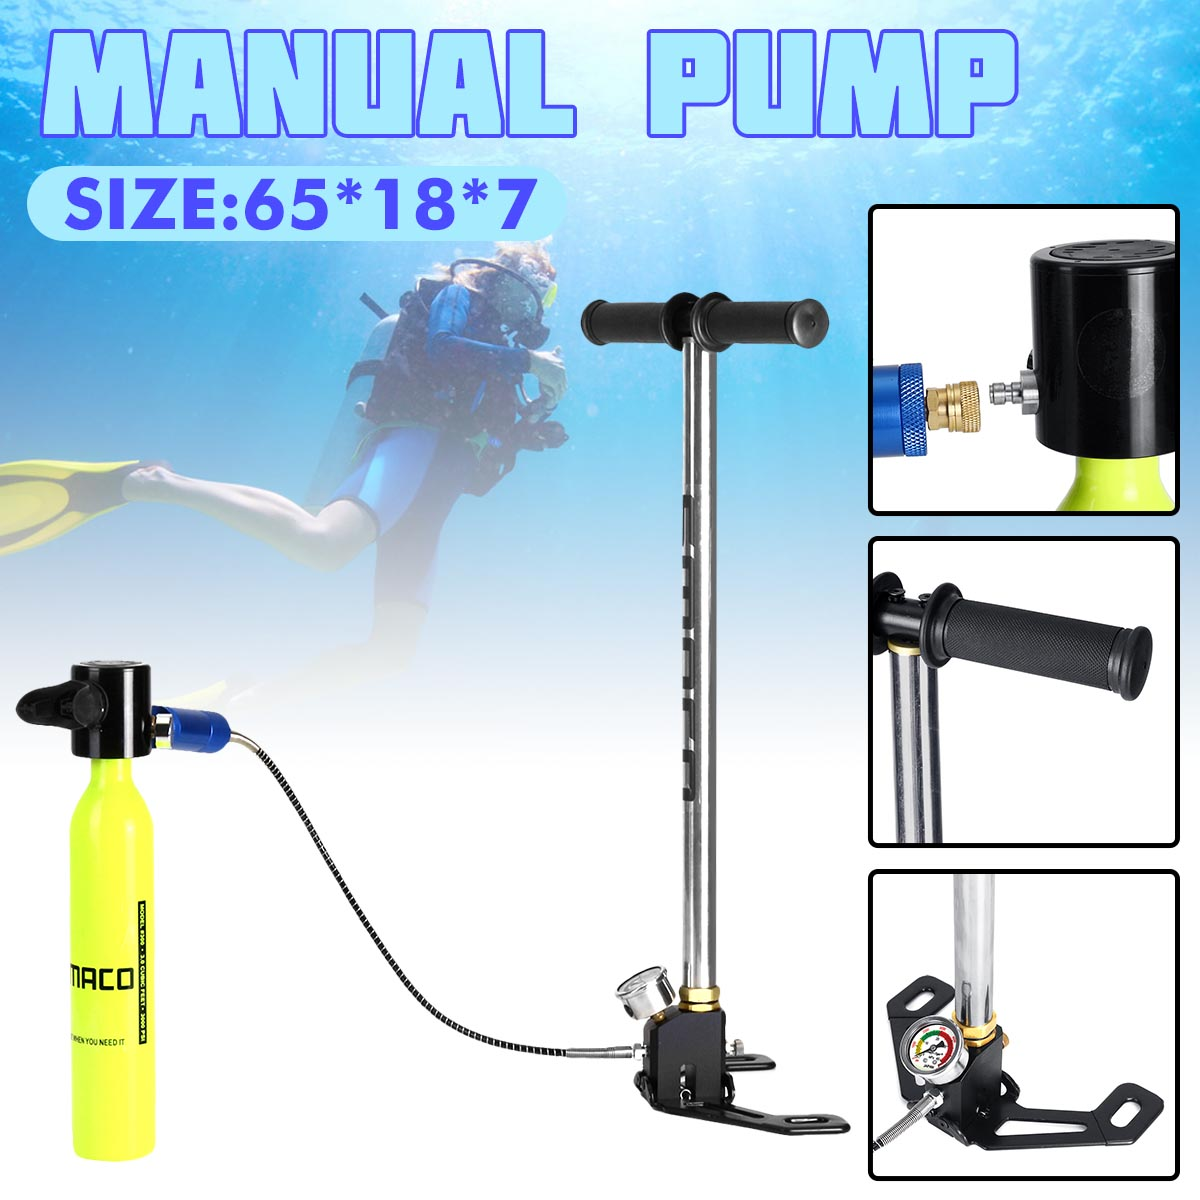 For 0.5L Scuba Diving Spare Tank Hand Pump Oxygen Air Tank Hand Operated Pump For SMACO Spare Underwater Breathing Accessories|Snorkels| |  - title=